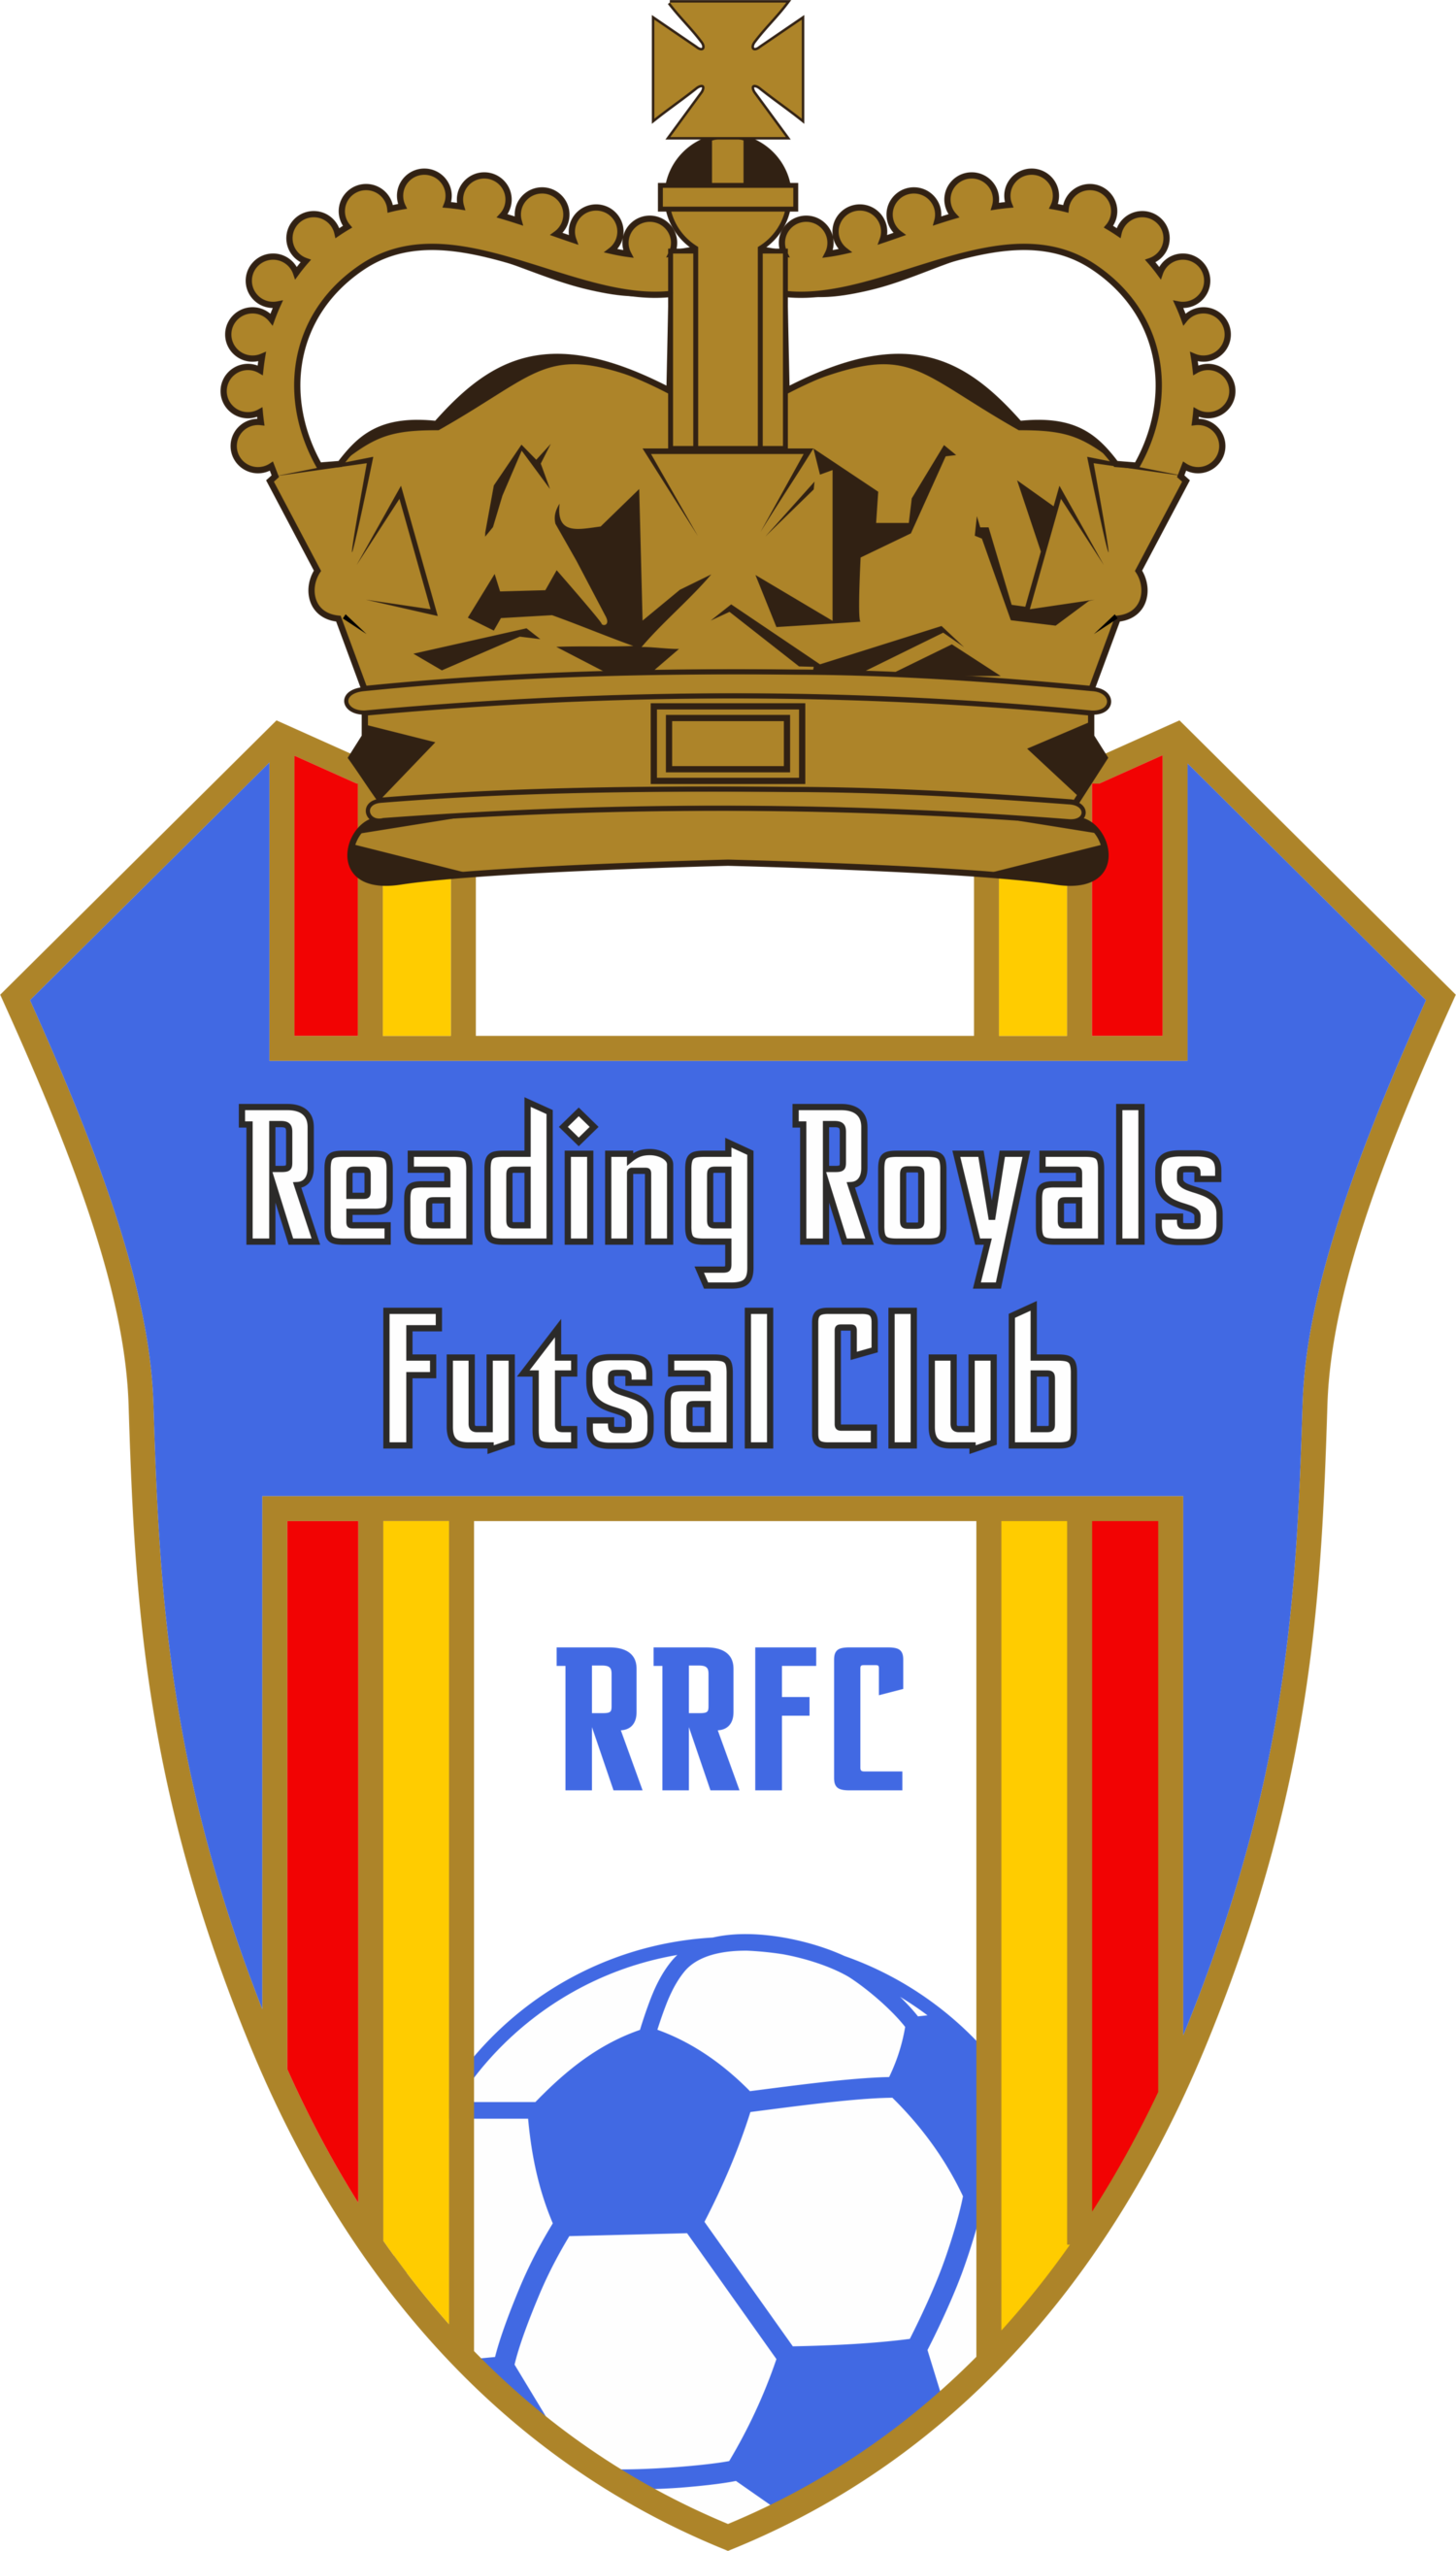 Reading Royals Futsal Club